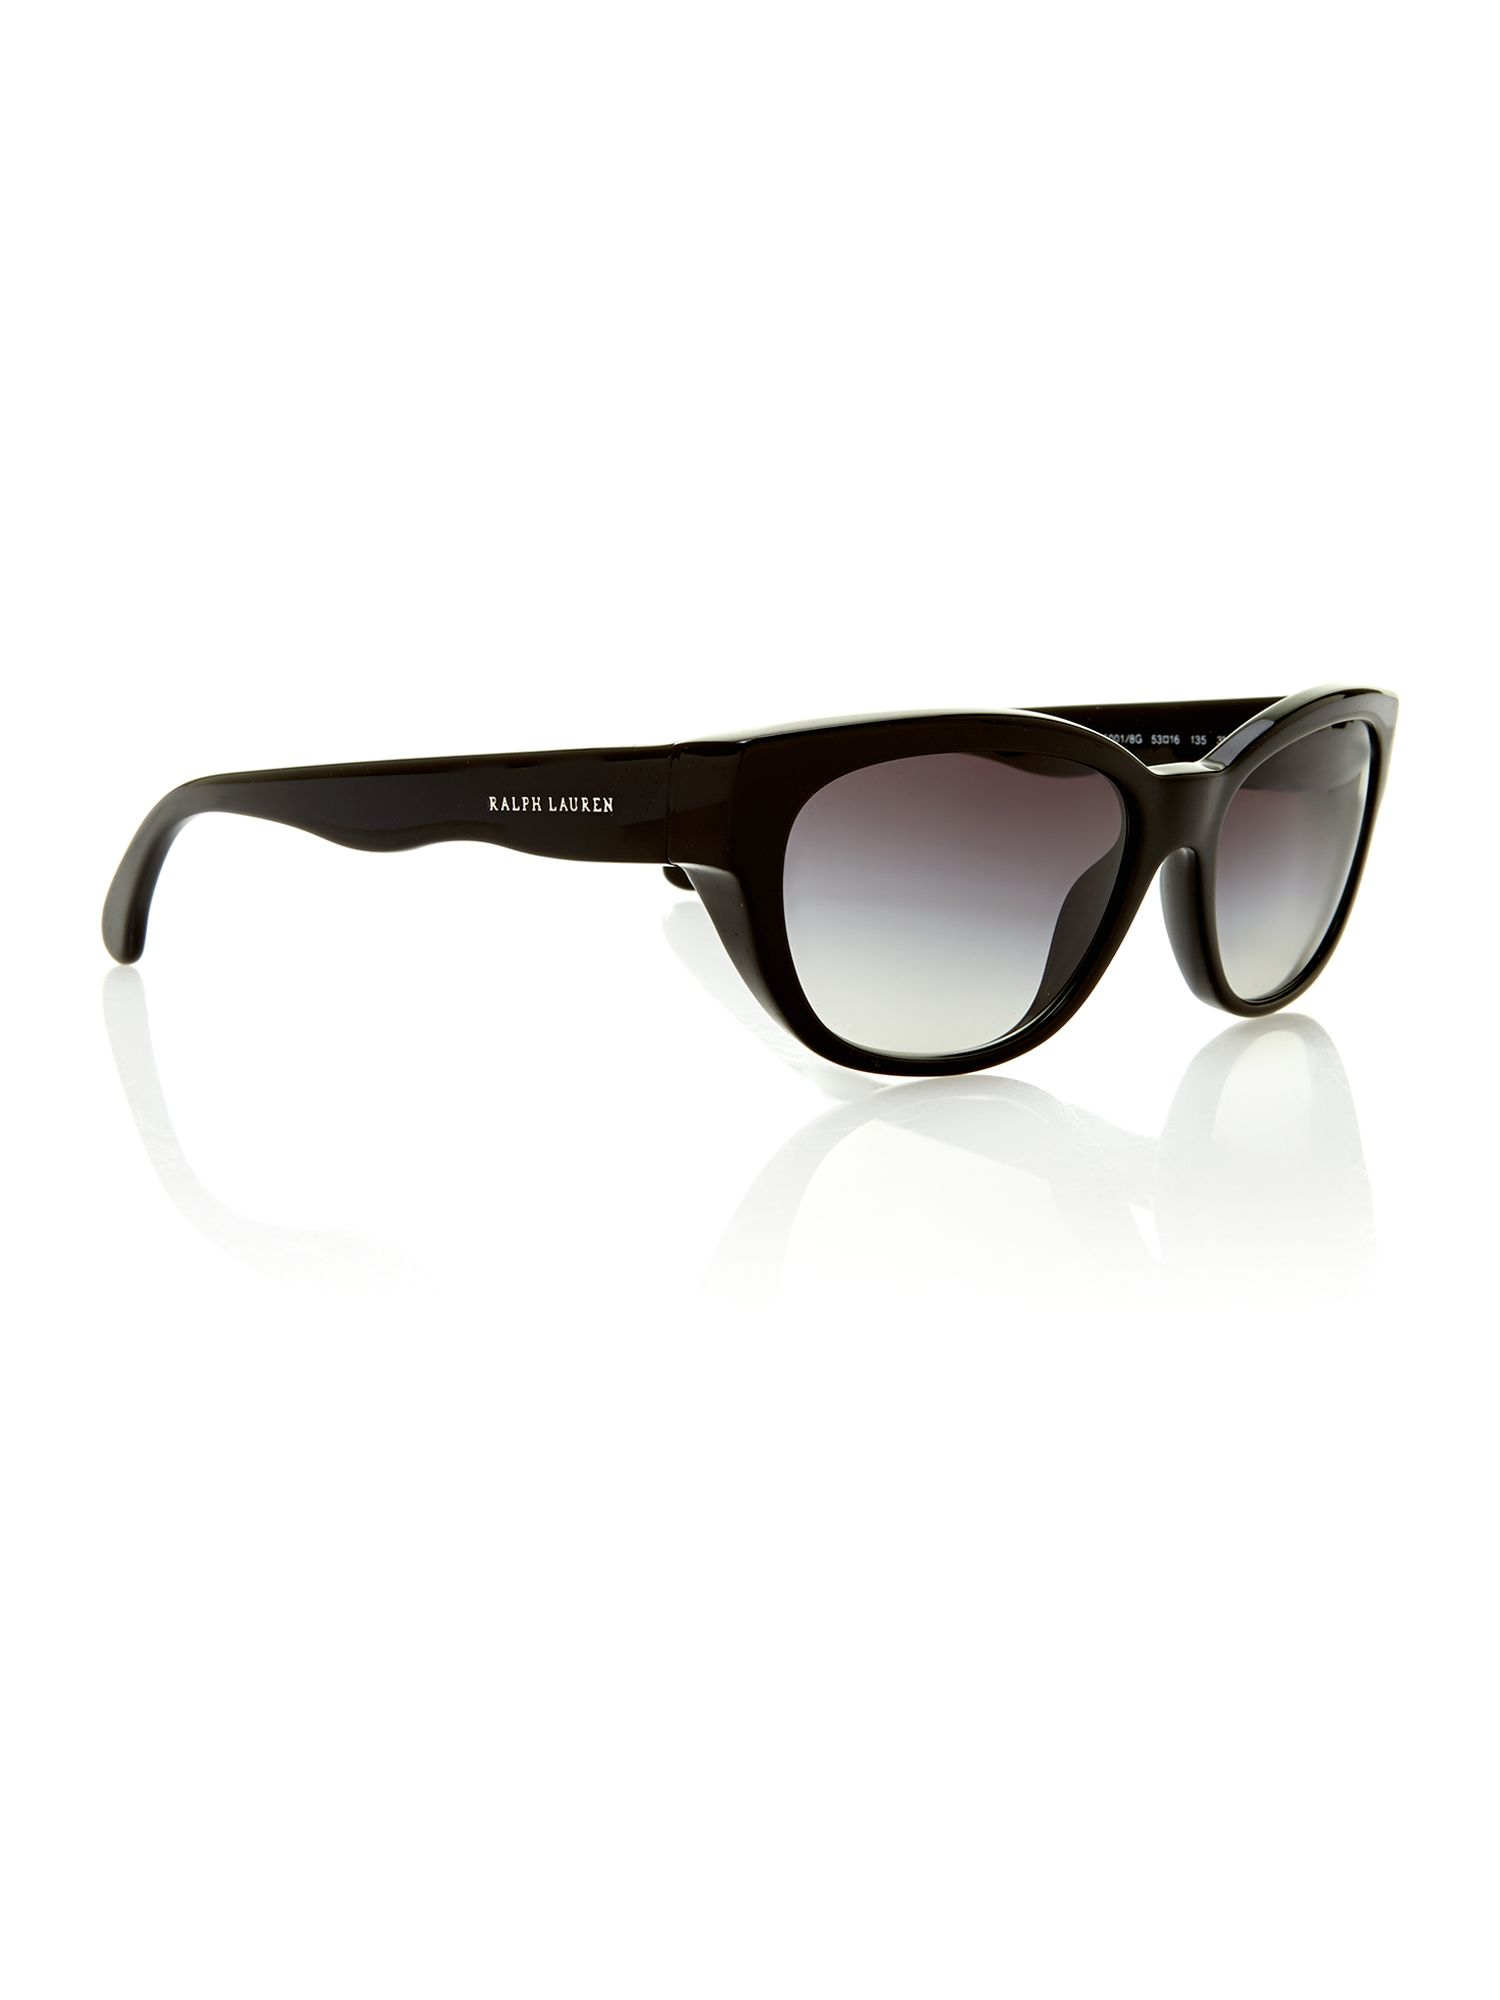 RL8101 black eastern coast sunglasses